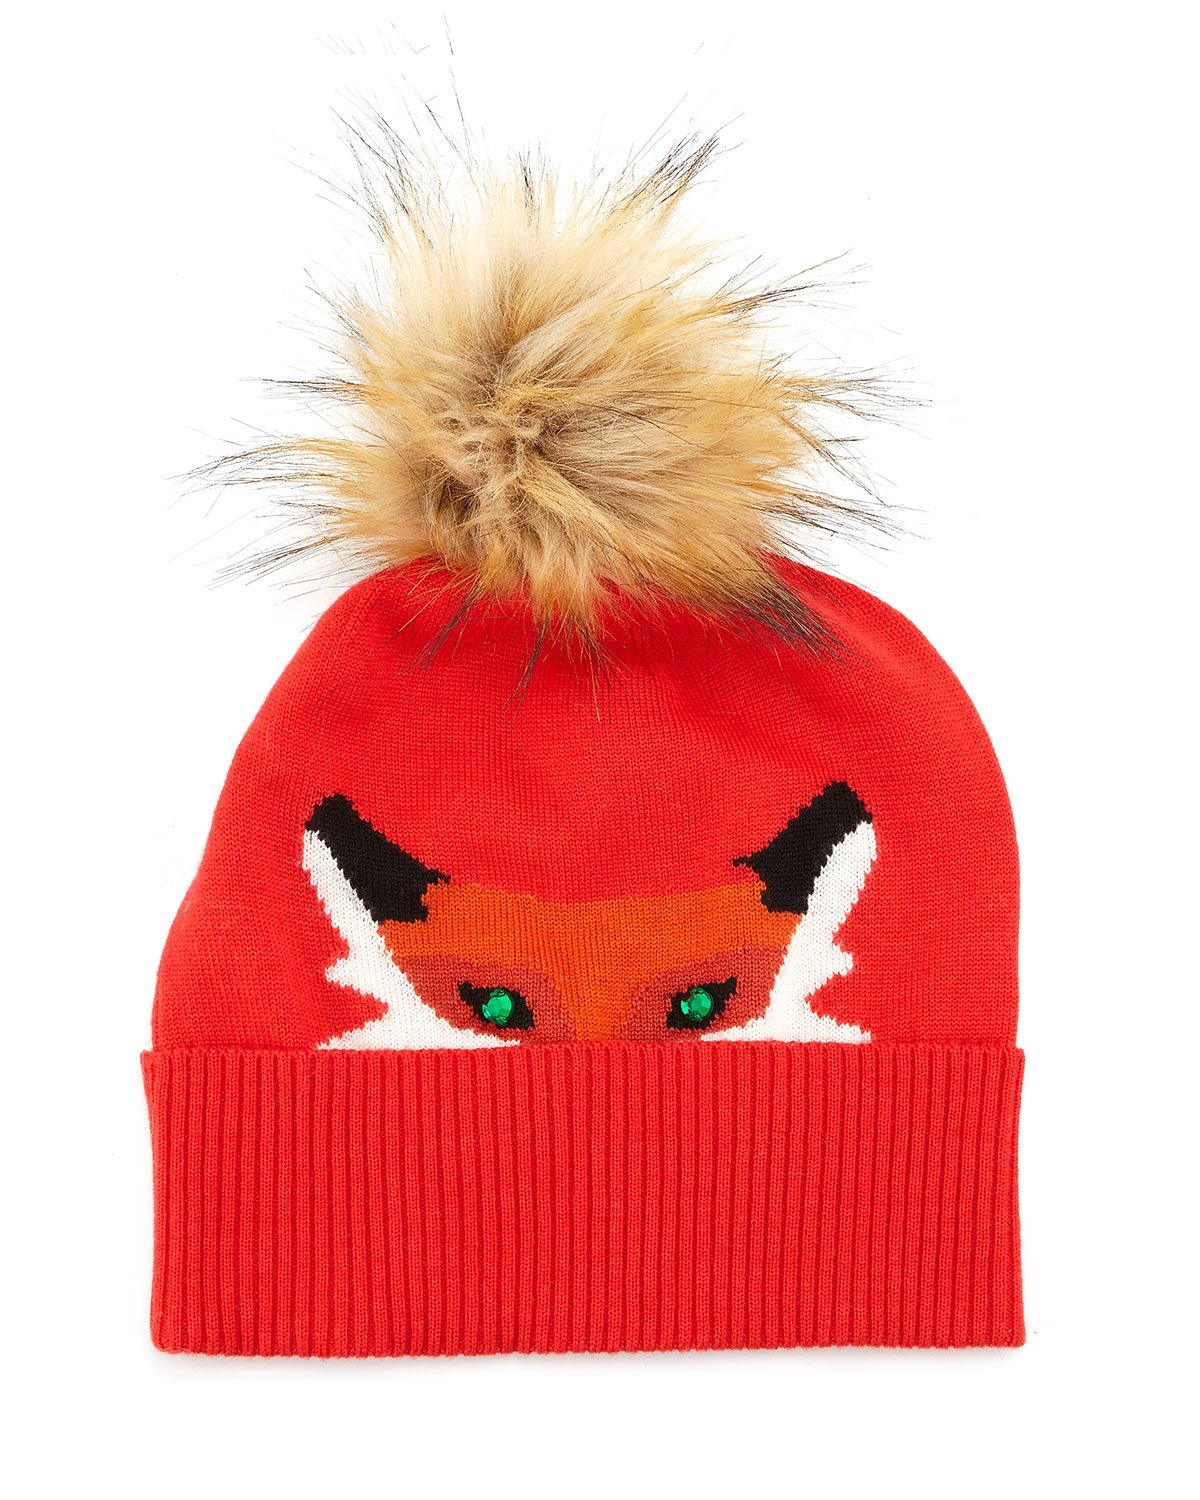 6b34827a31861 Kate Spade Fox Beanie Hat With Rhinestone Detail in Red - Lyst